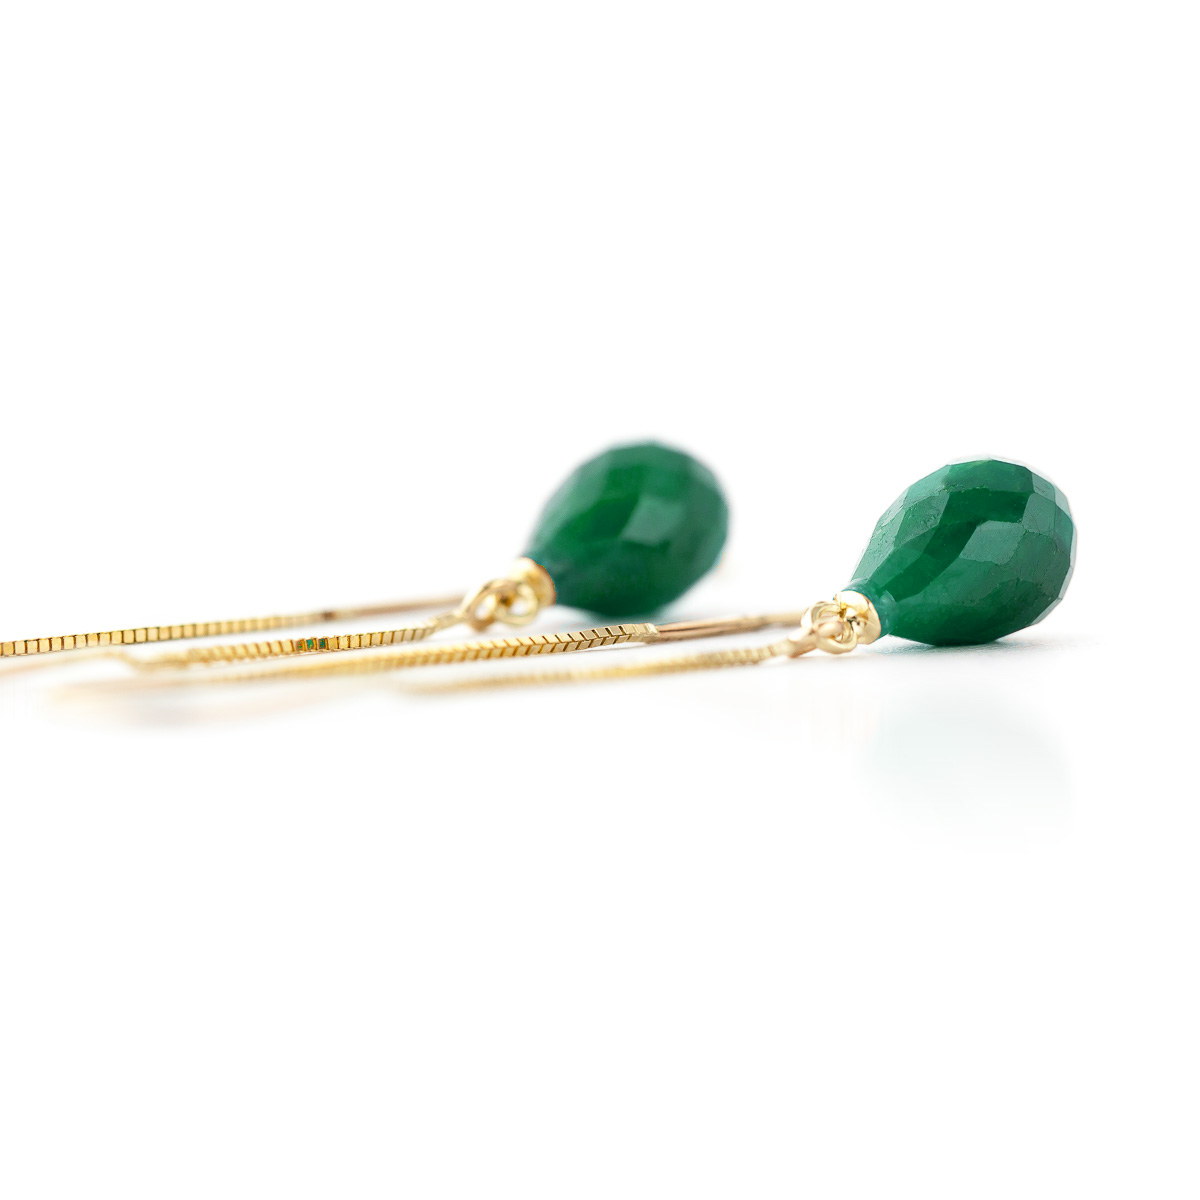 Emerald Scintilla Briolette Earrings 6.6ctw in 9ct Gold